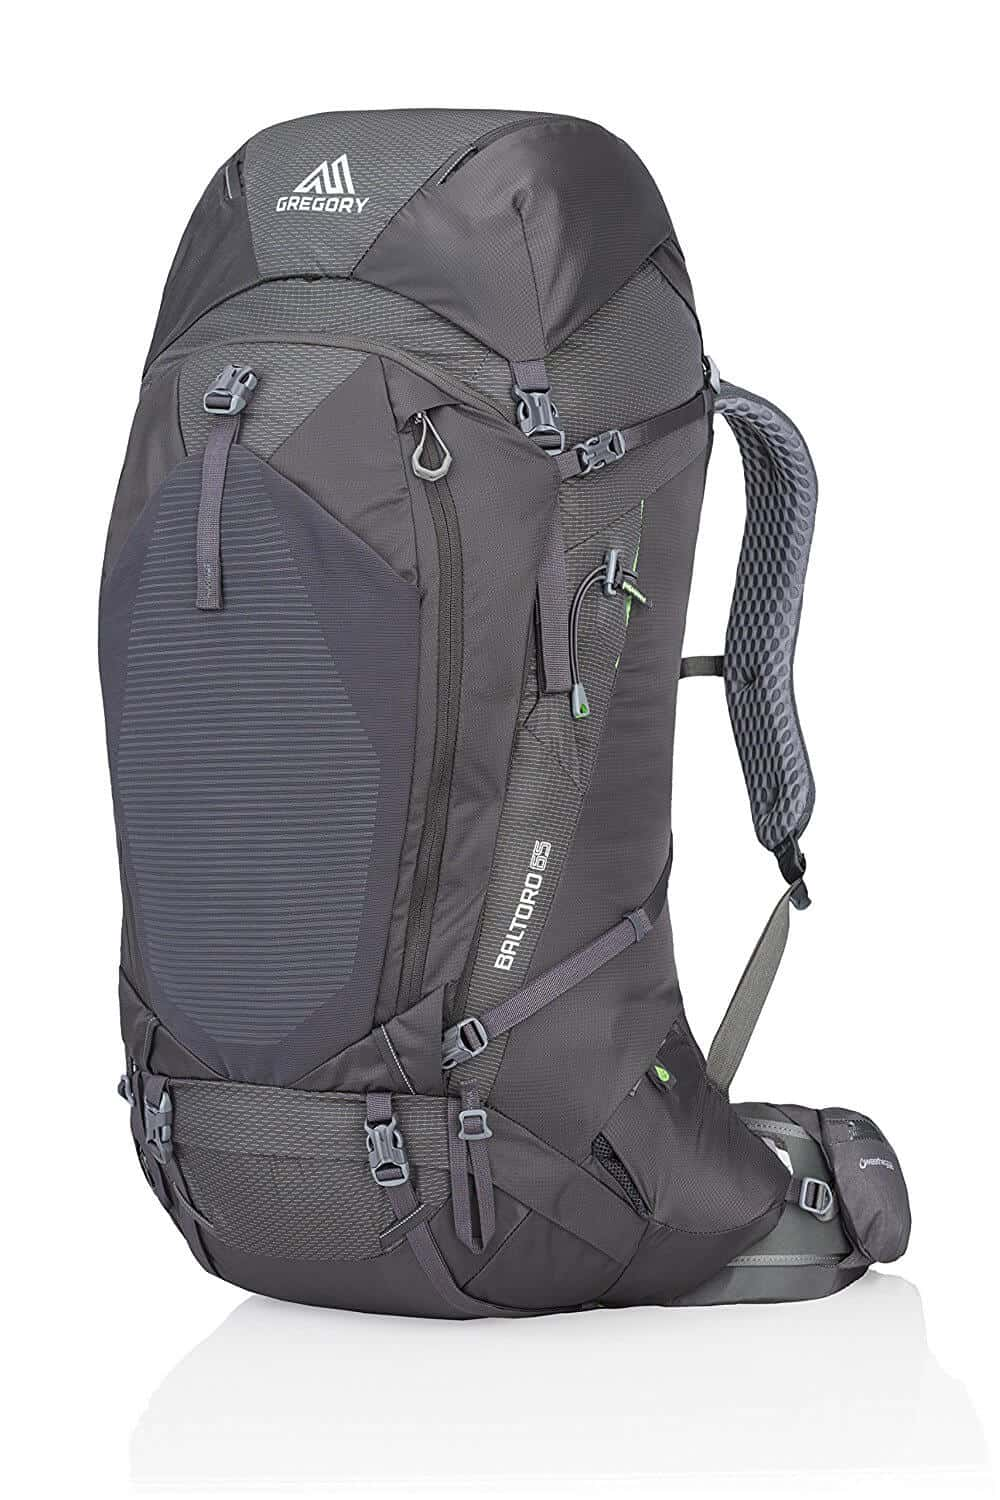 Gregory Baltoro 65L Backpackw